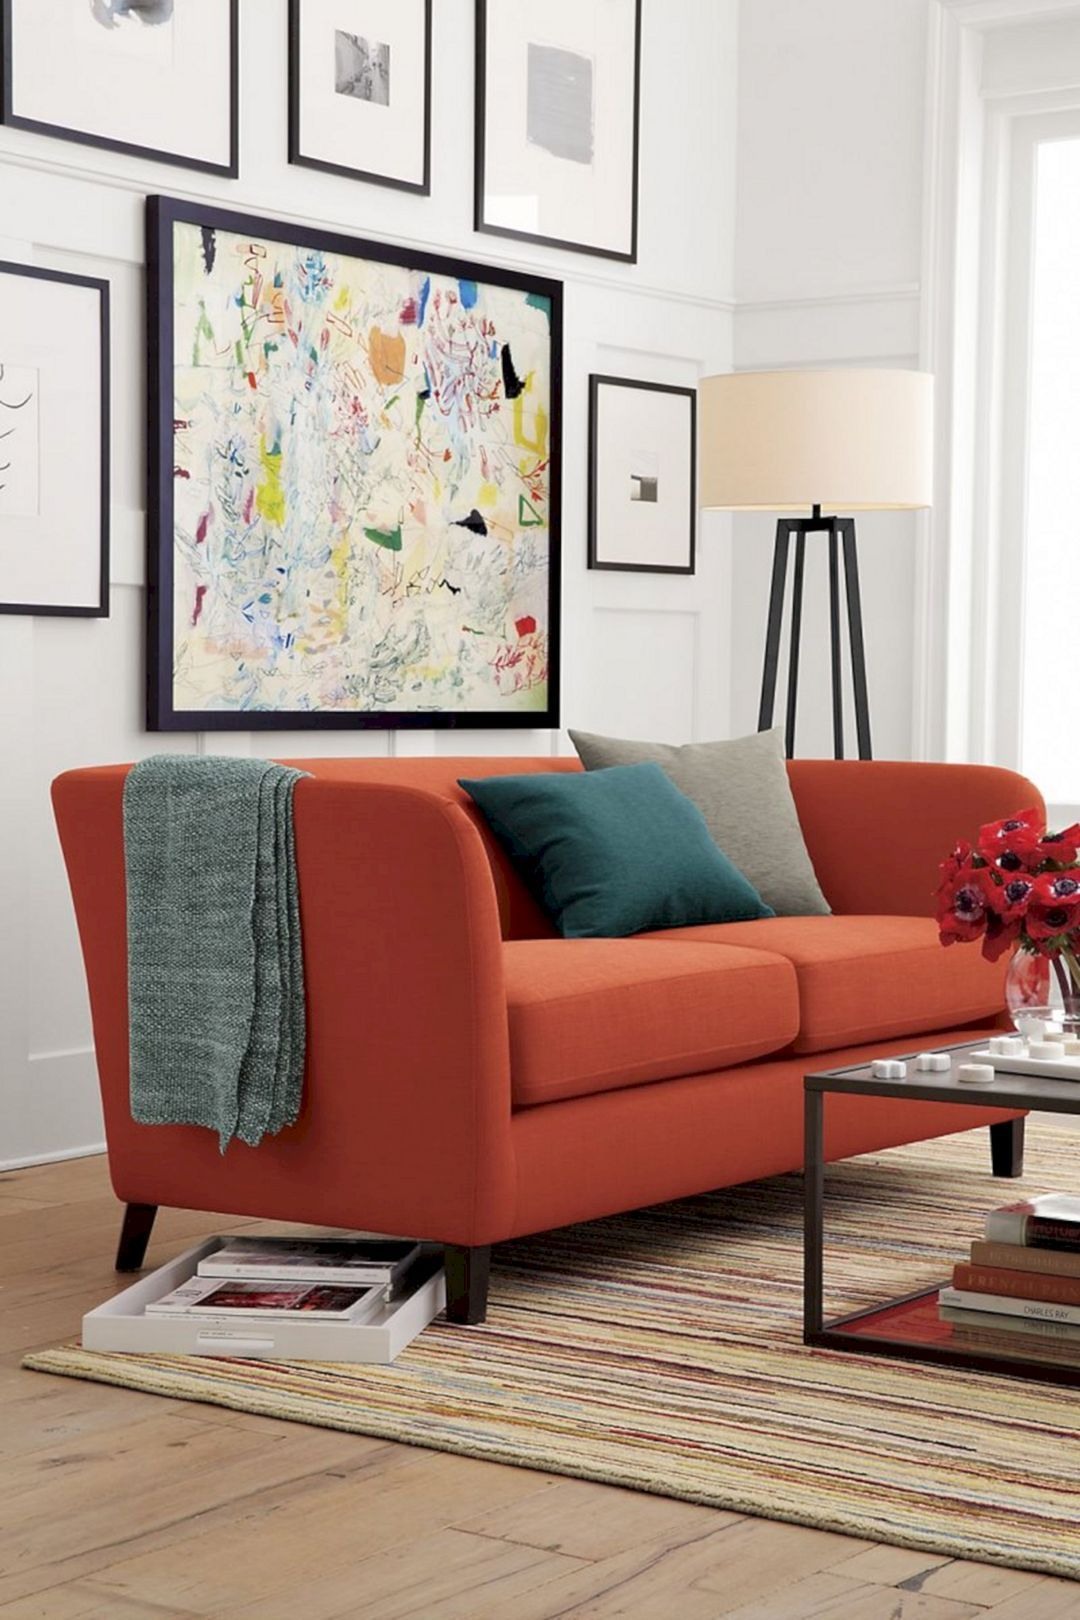 Nice 24 Amazing Rust And Grey Living Room Color Schemes Https 24spaces Com Home Apar Living Room Color Schemes Orange Couch Living Room Colourful Living Room Familyfriendly living room color